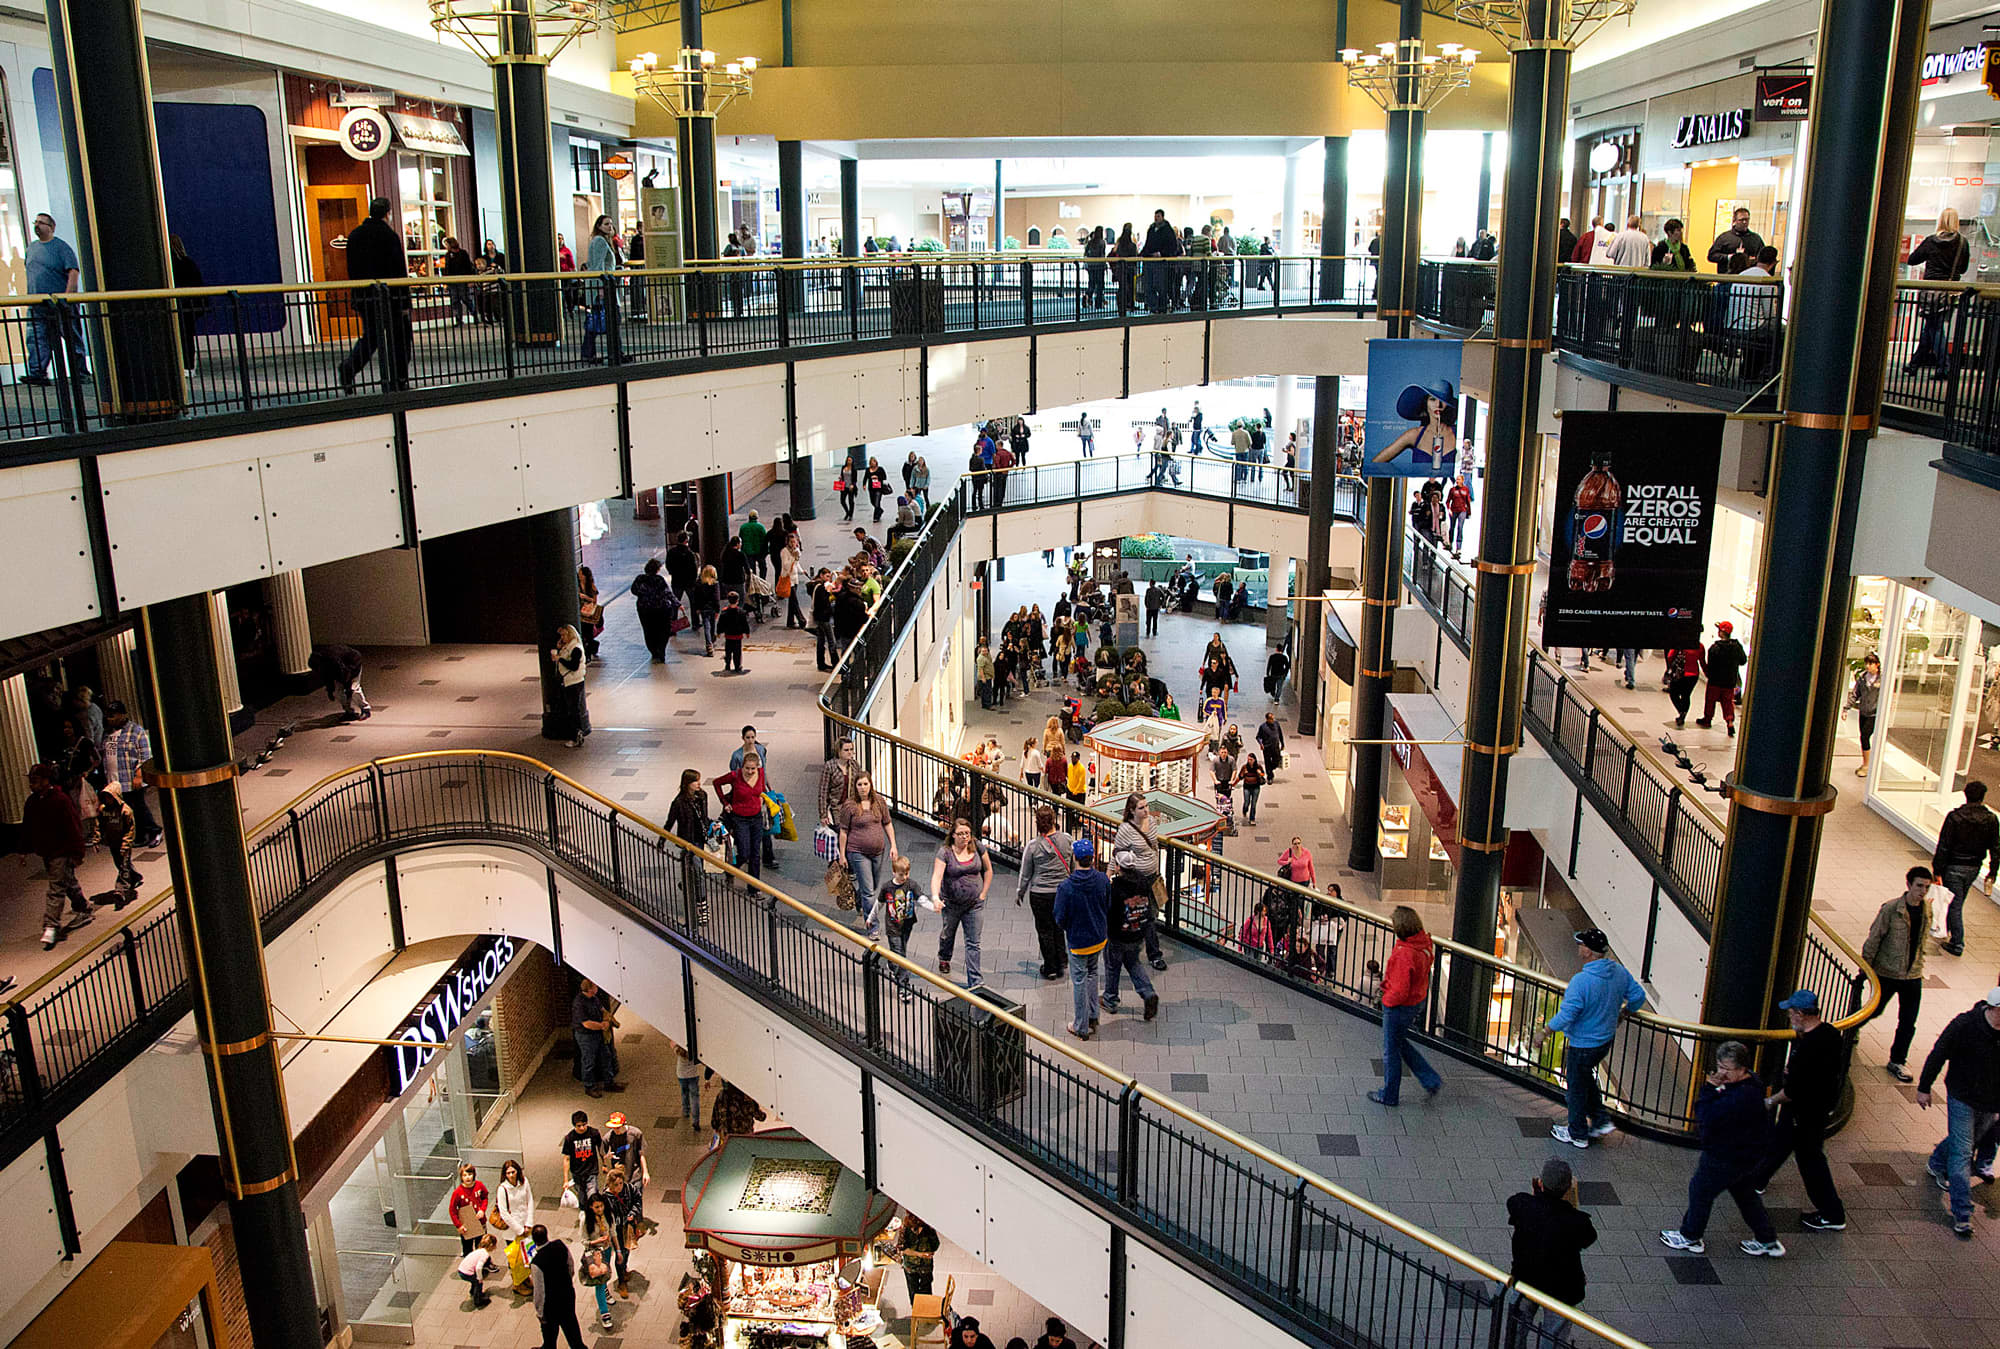 mall-of-america-is-no-longer-delinquent-on-1-4-billion-mortgage